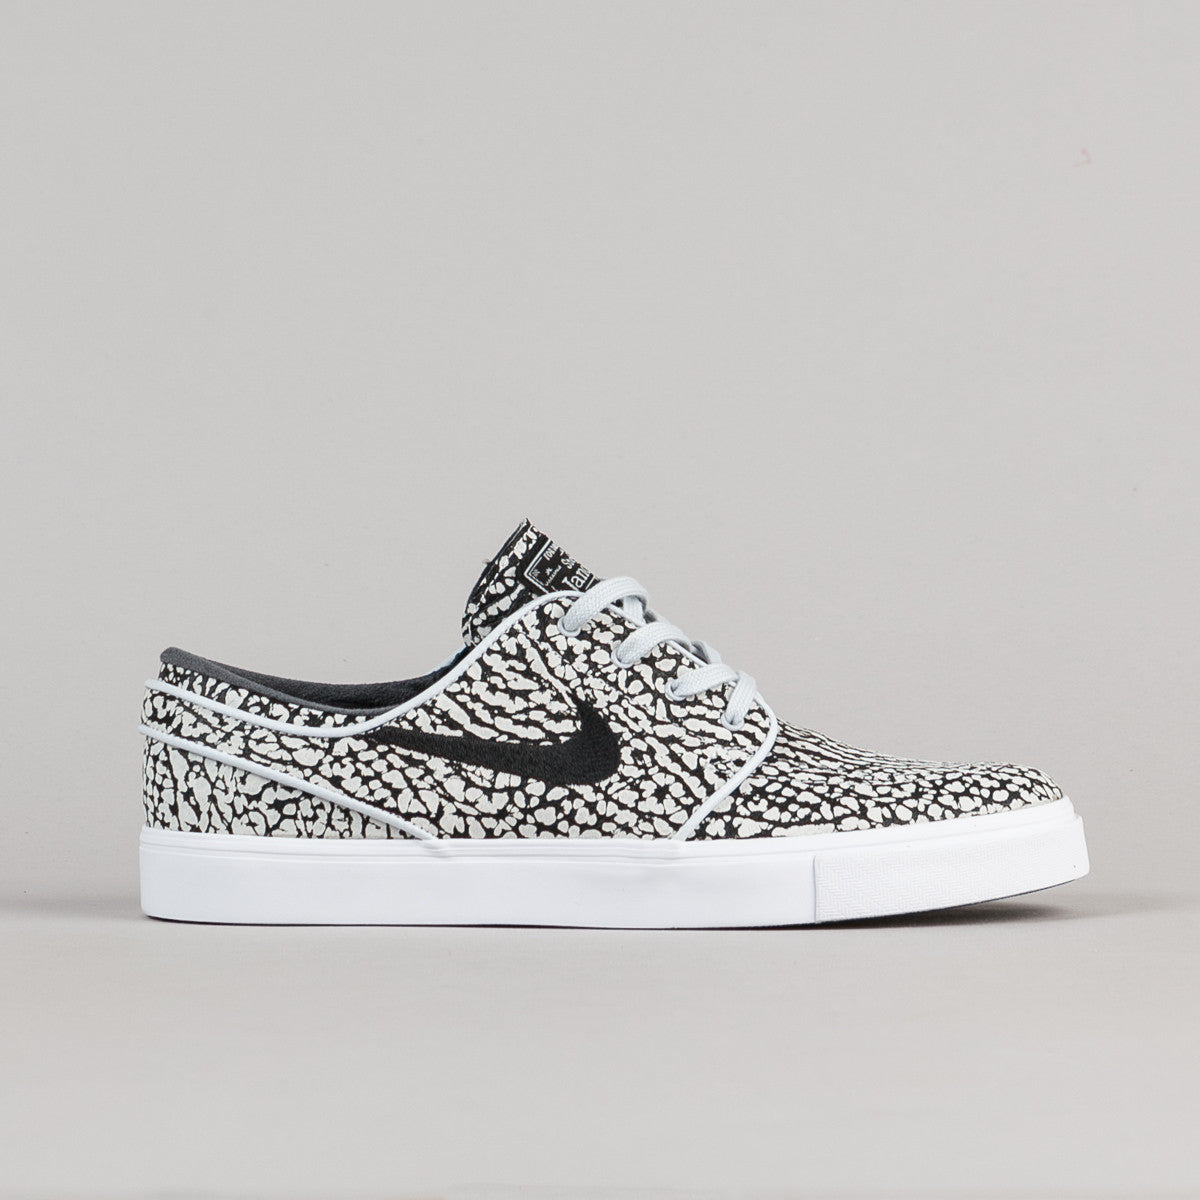 1c27bcc5b3a Nike SB Stefan Janoski Elite  Road Pack  Shoes - Pure Platinum   Black -  White